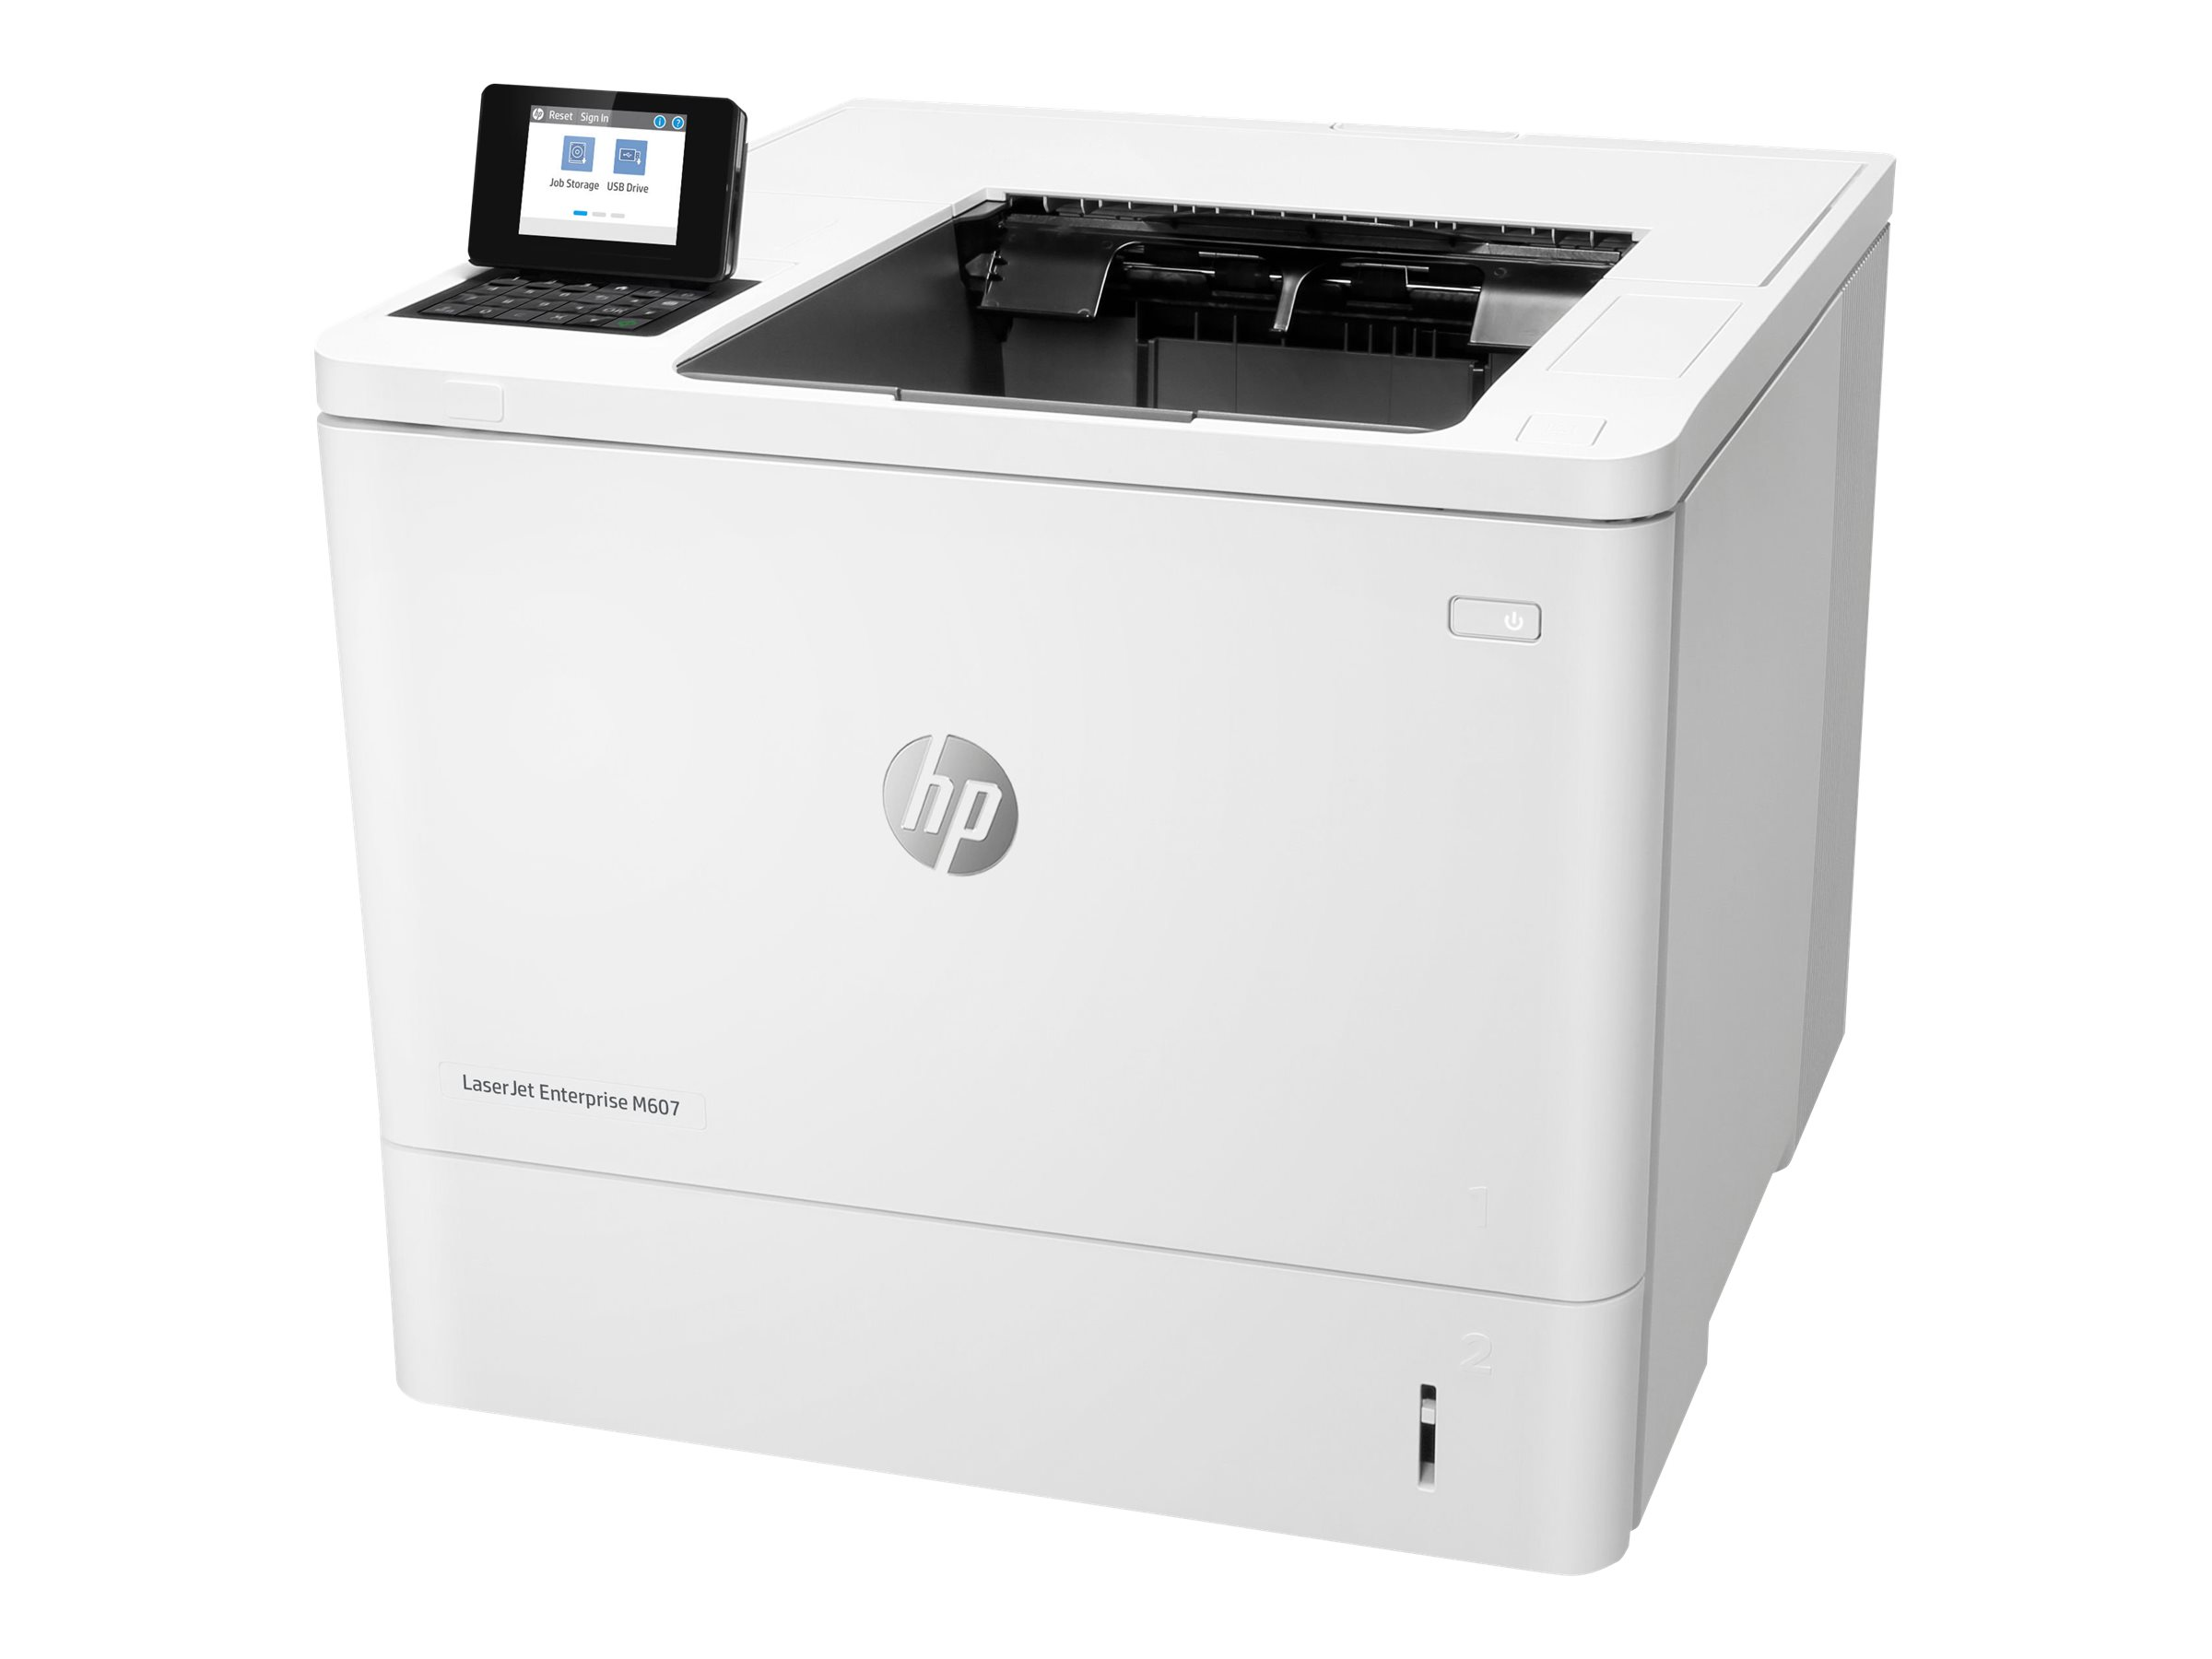 HP LaserJet Enterprise M607dn - printer - B/W - laser